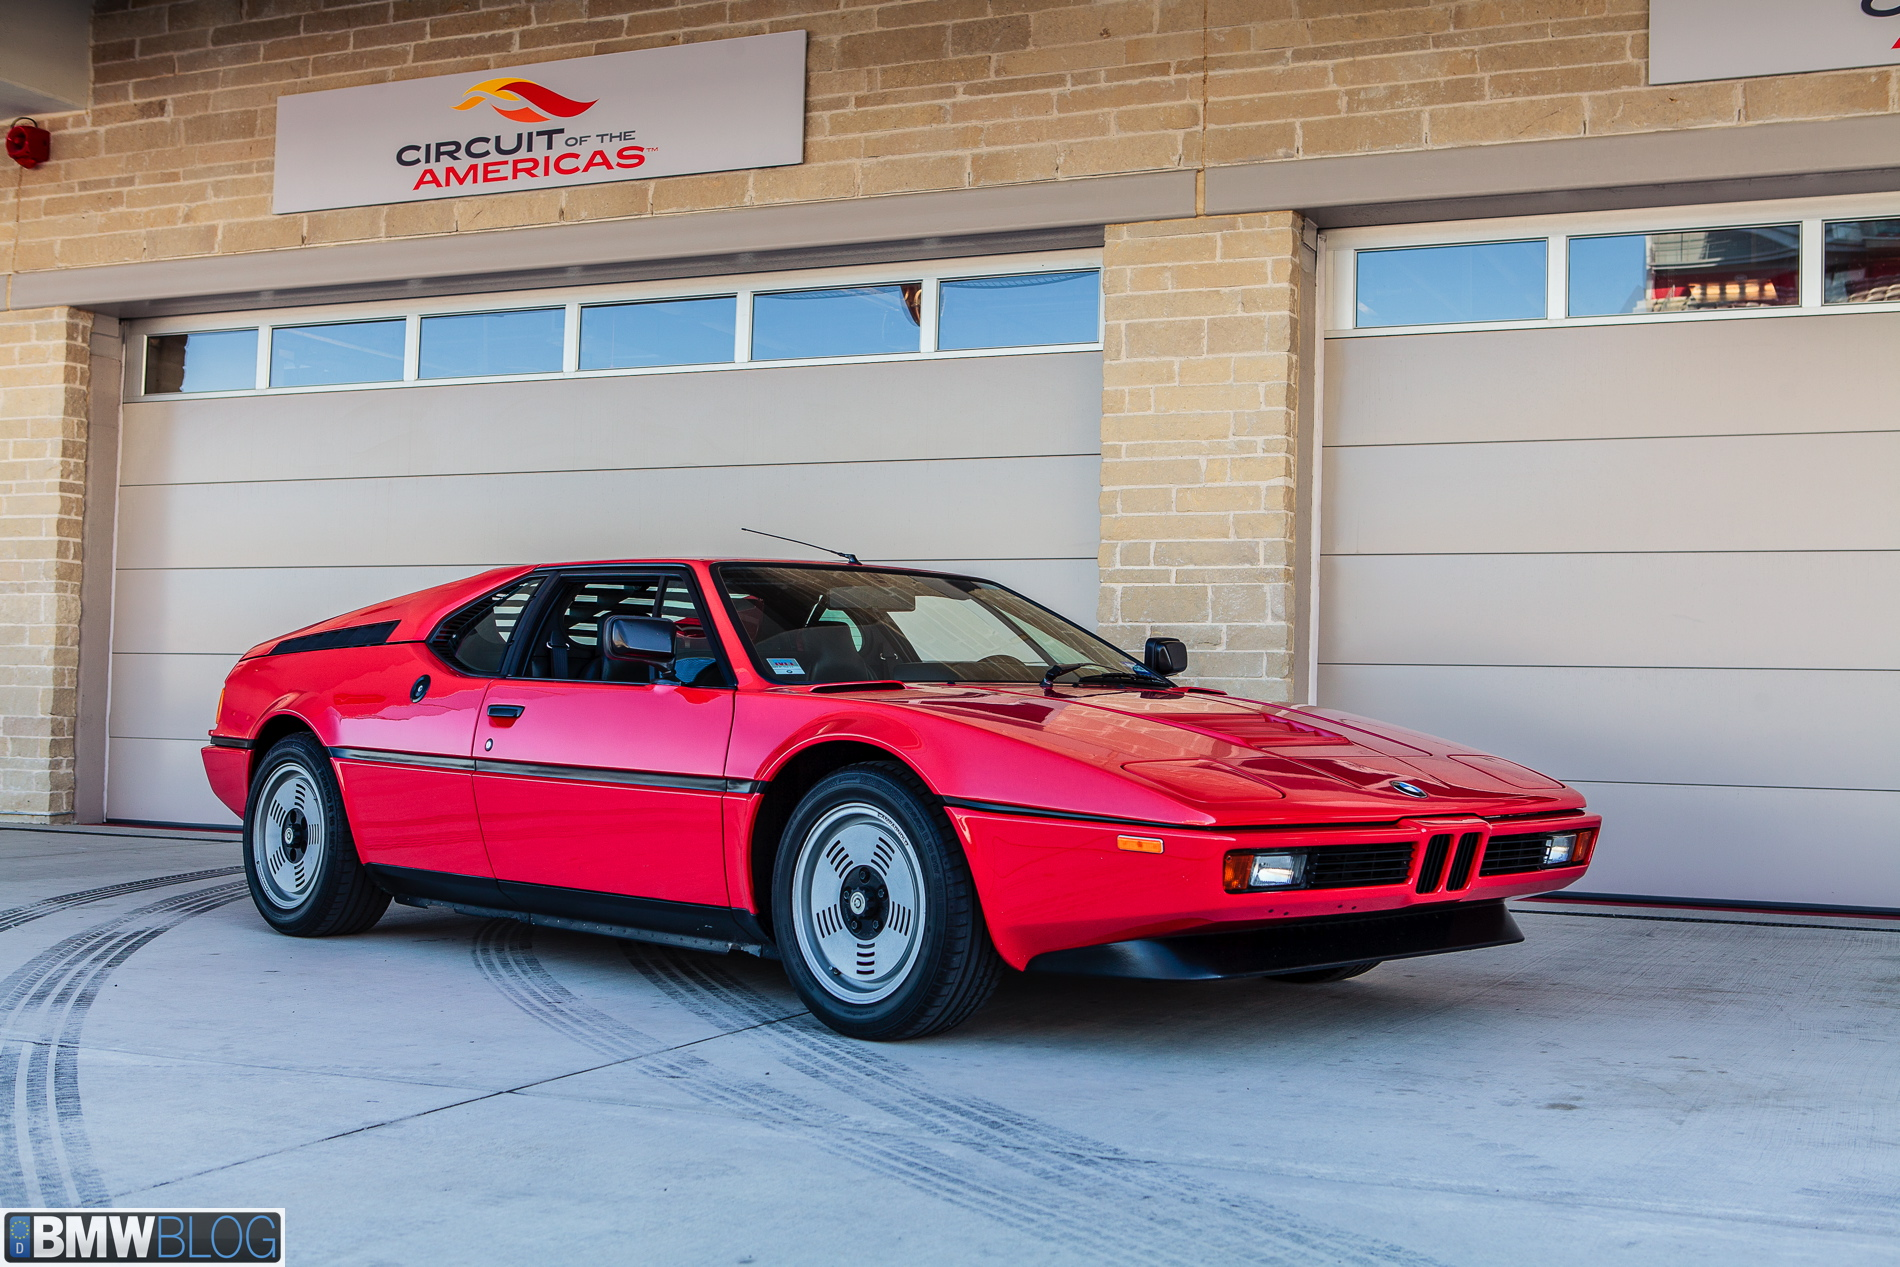 The Bmw M1 The Supercar With A Sad History